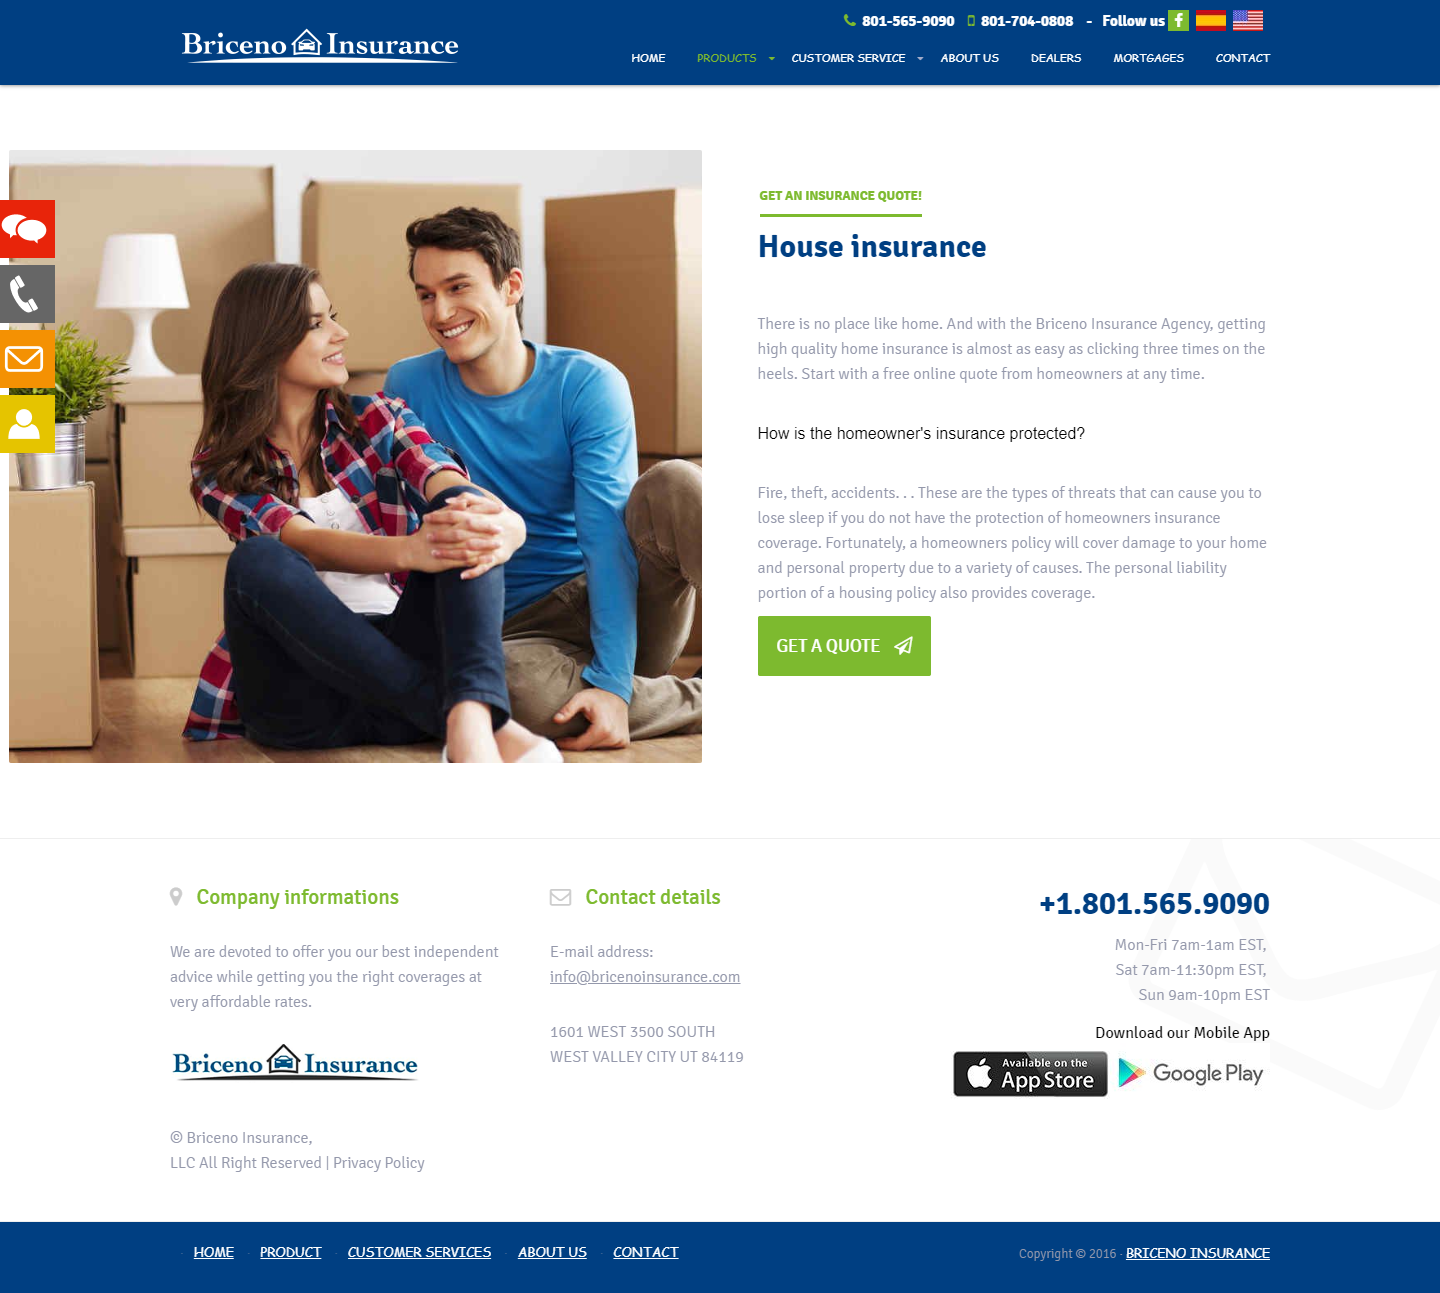 Pin By Seguros Briceno On Briceno Insurance Sitio Web With Images